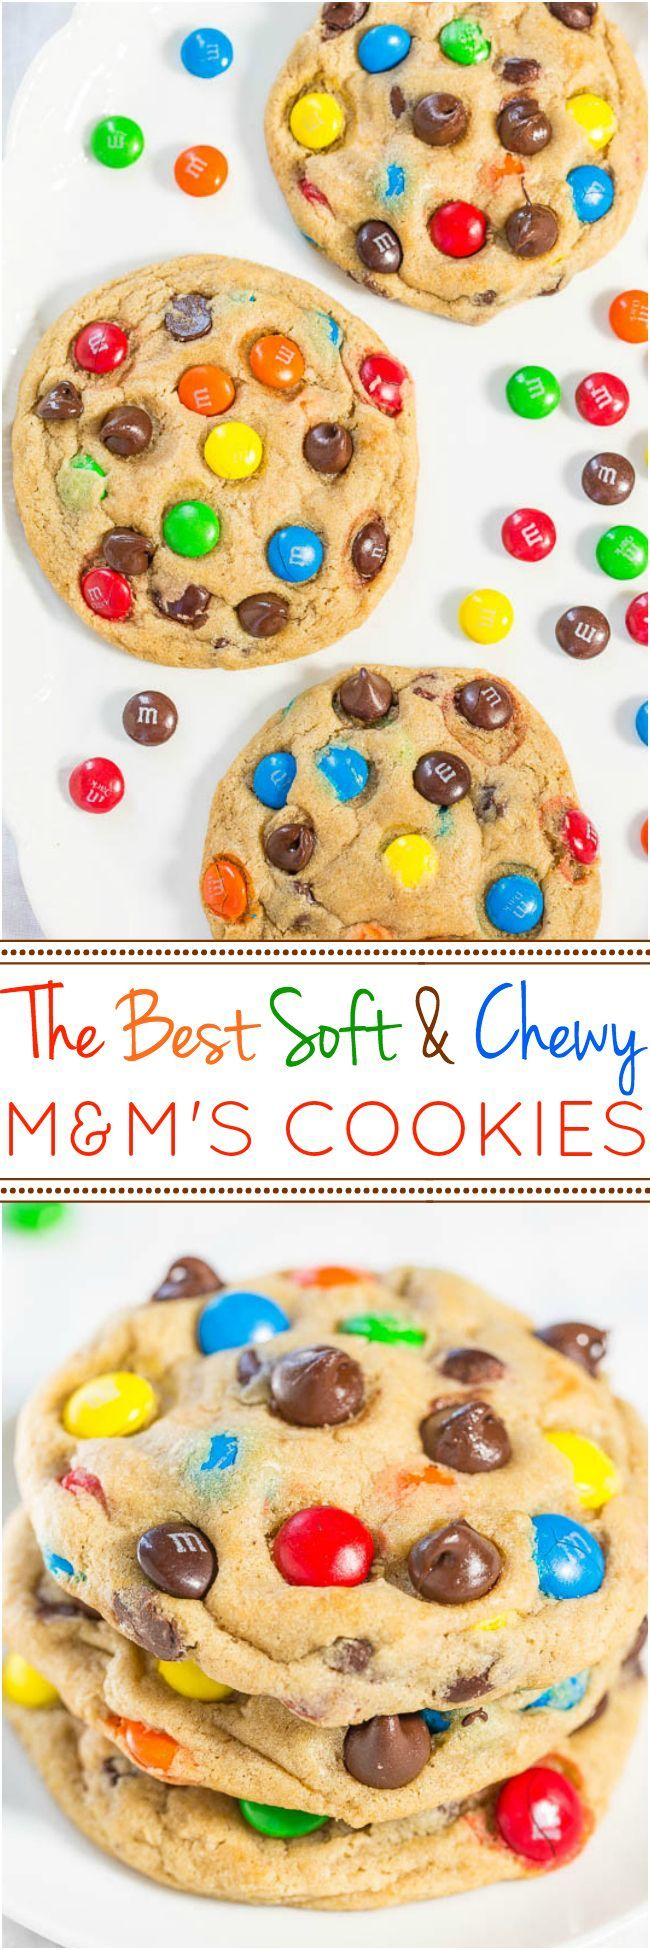 The Best Soft and Chewy M&M'S Cookies